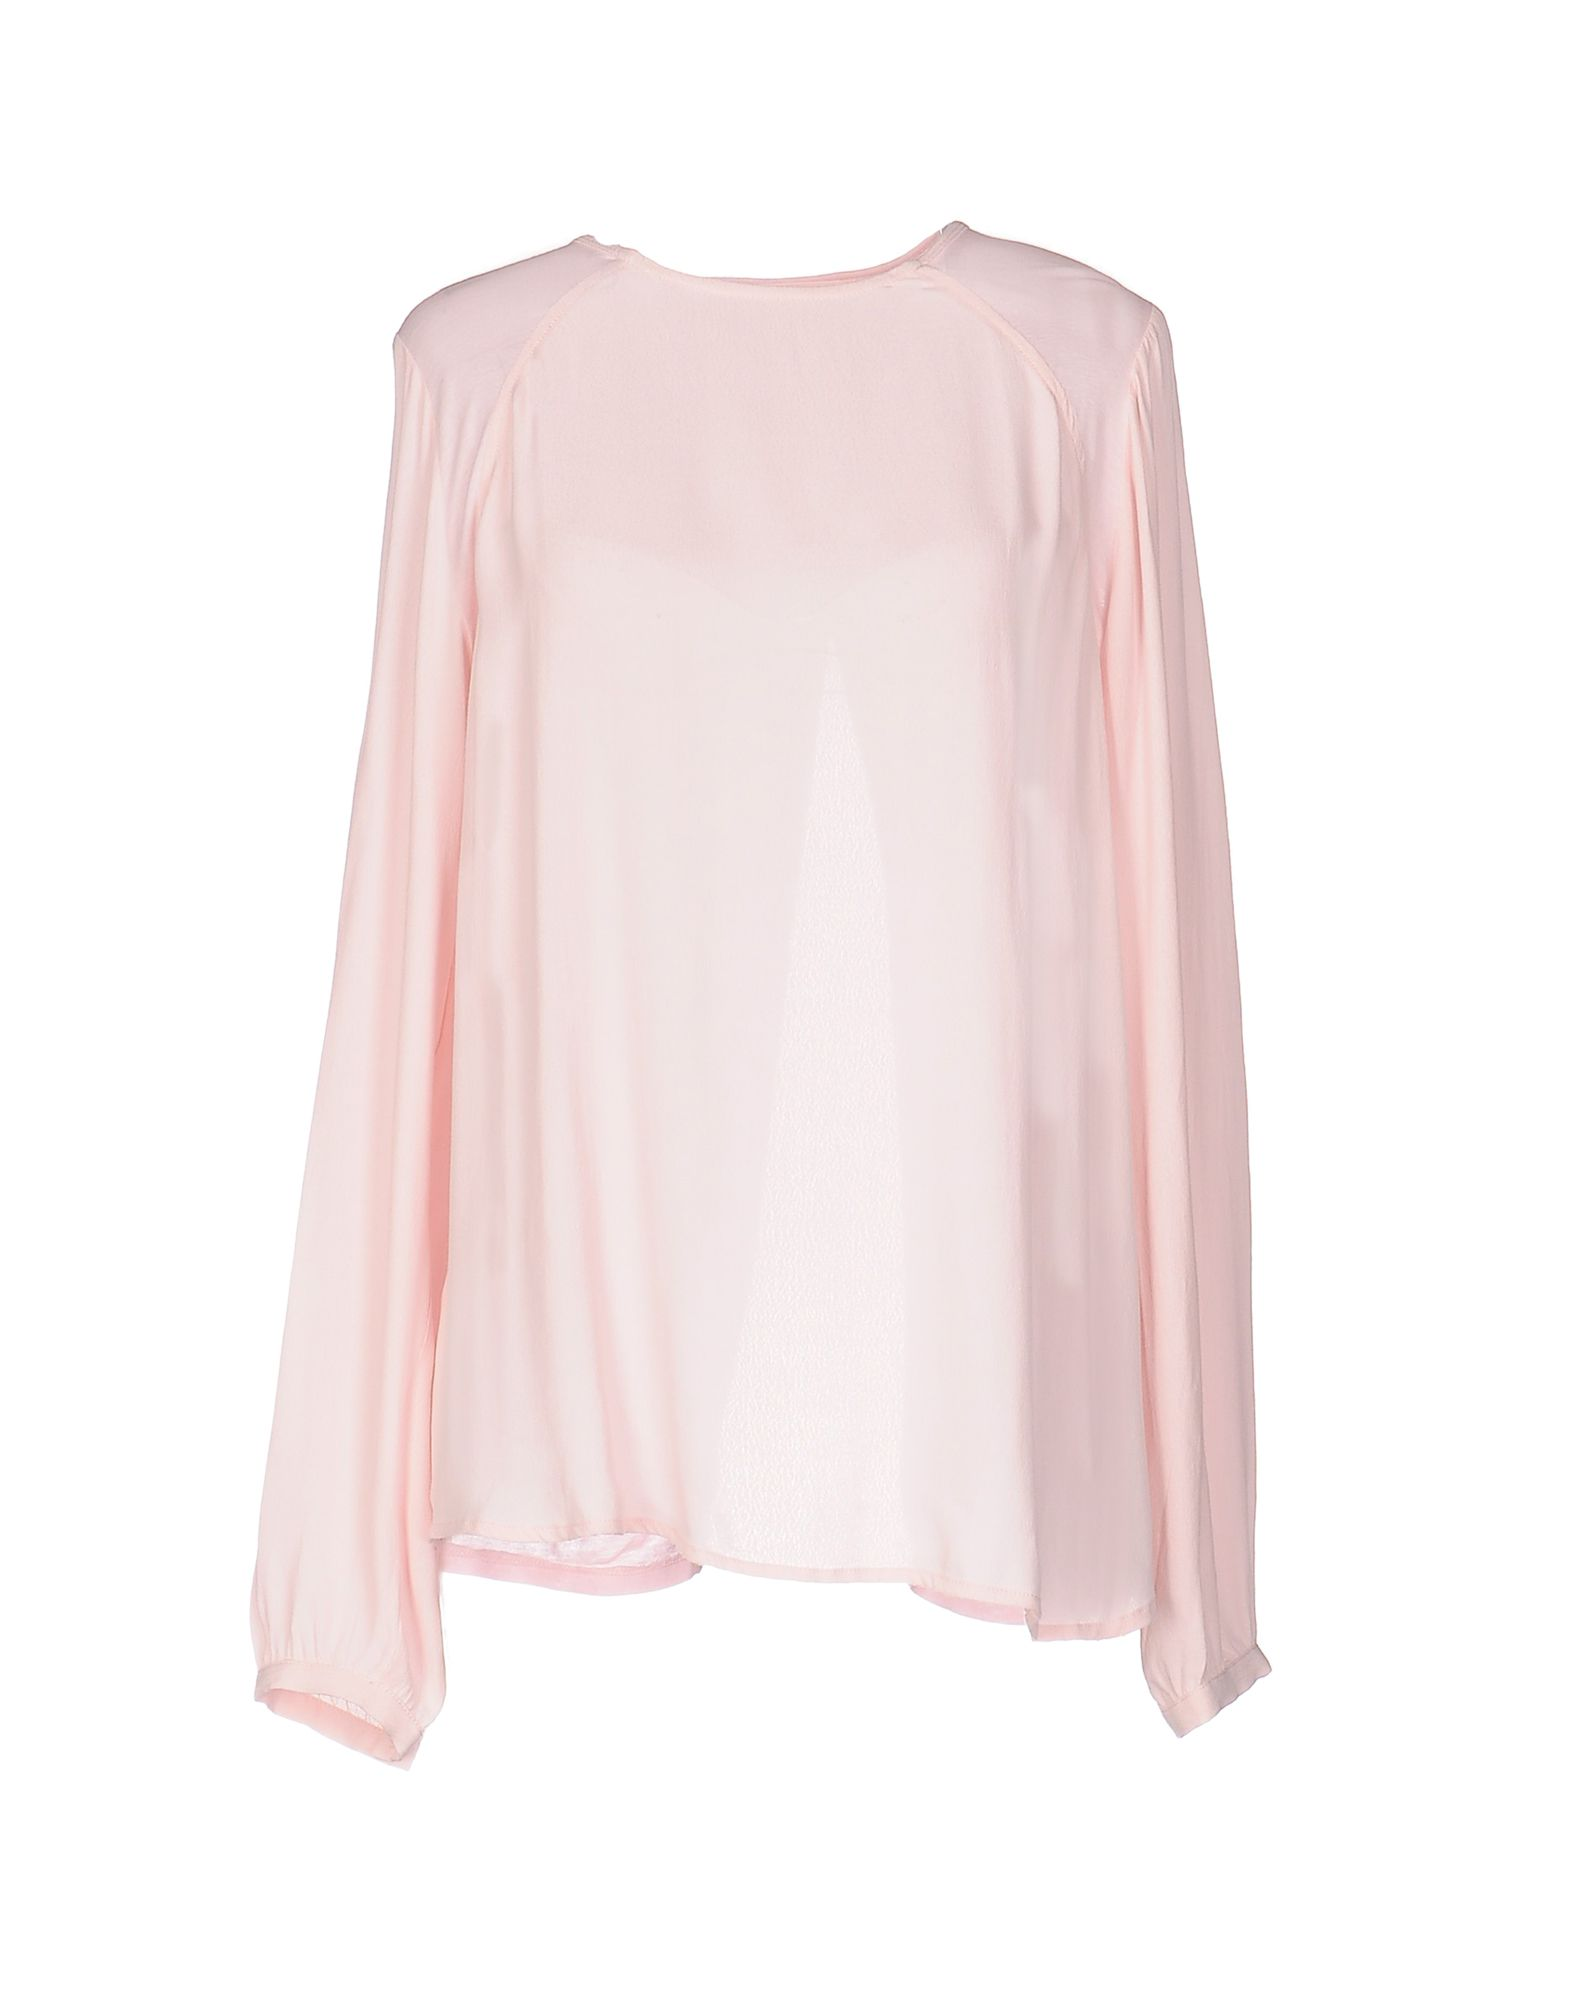 CUSTOMMADE Blouses in Pink